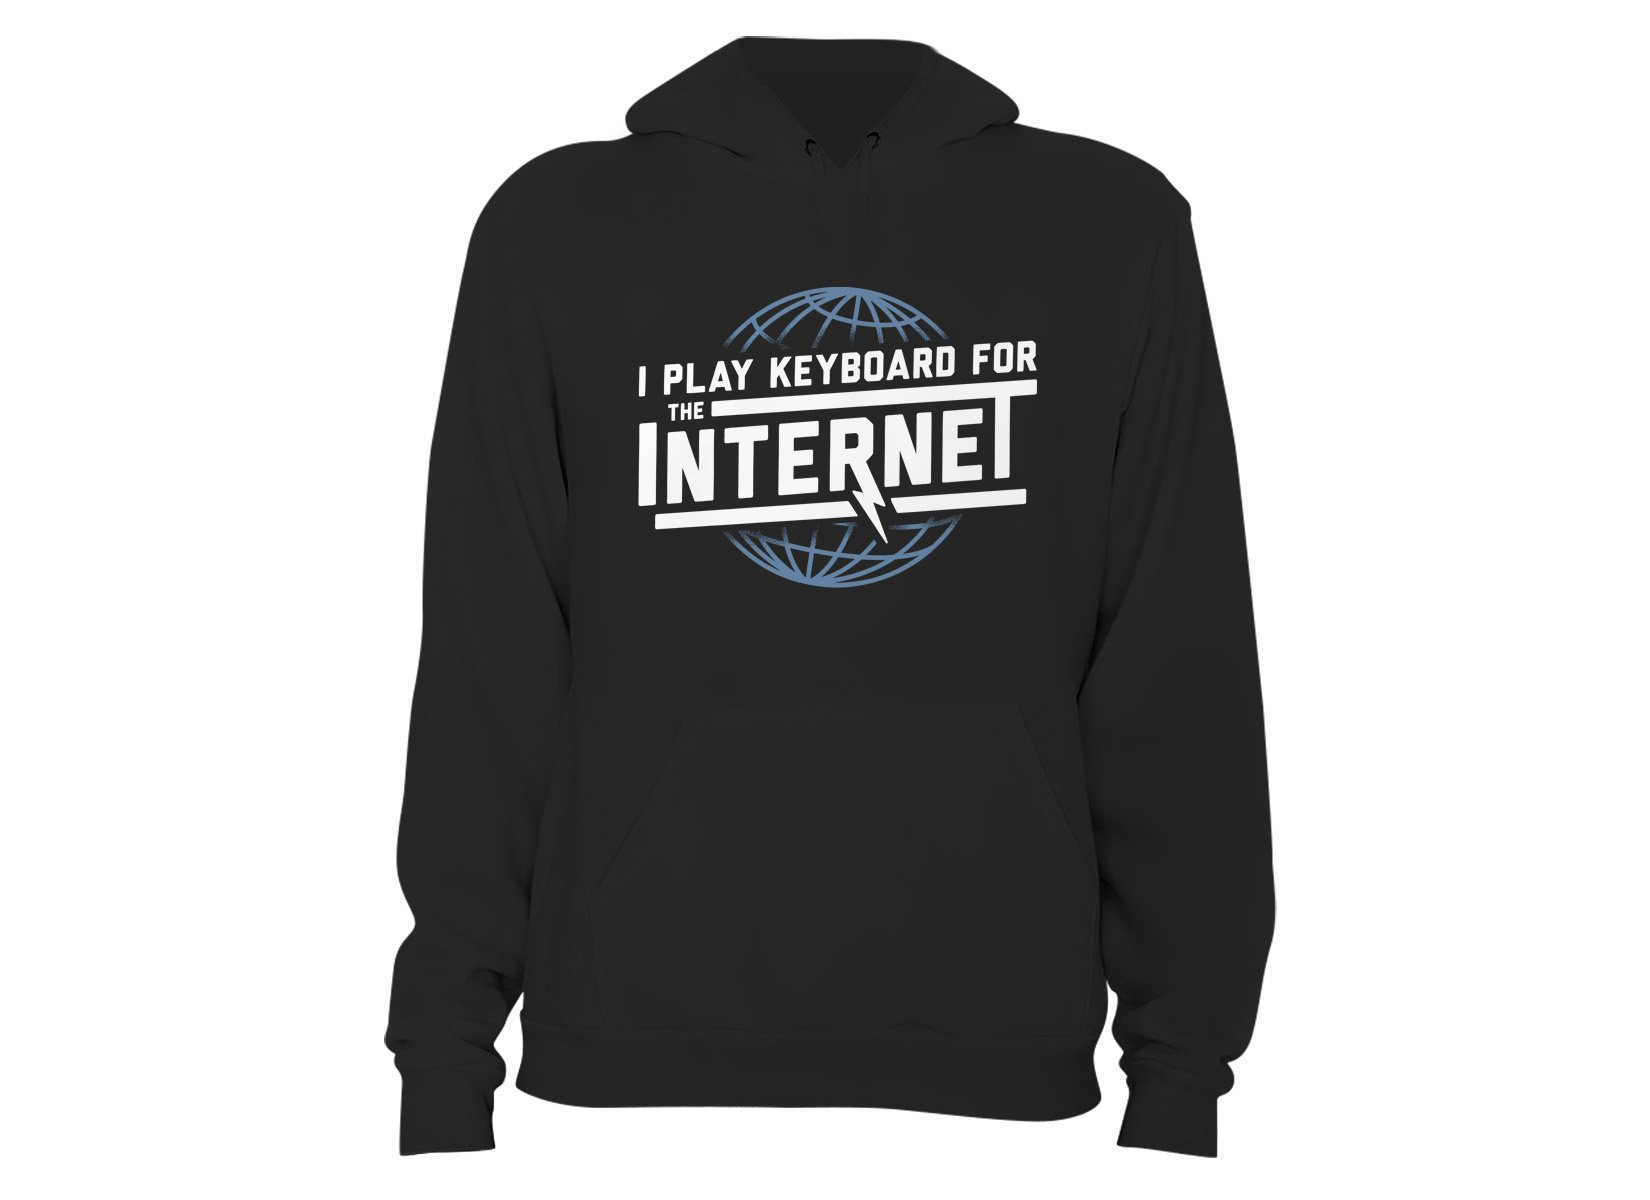 I Play Keyboard For The Internet on Hoodie